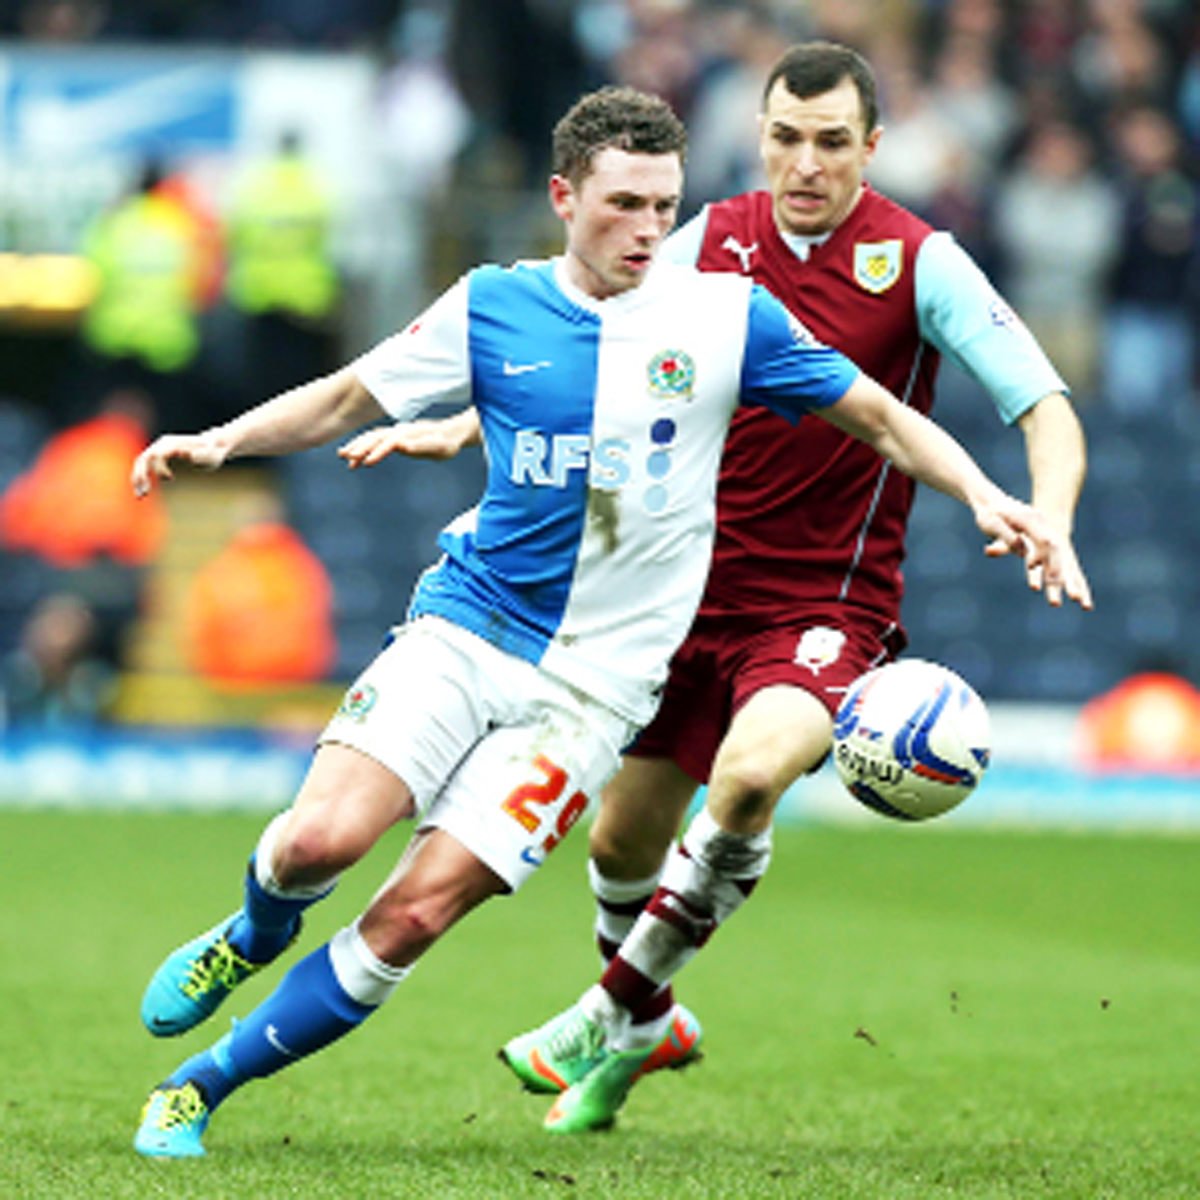 Rovers midfielder Corry Evans